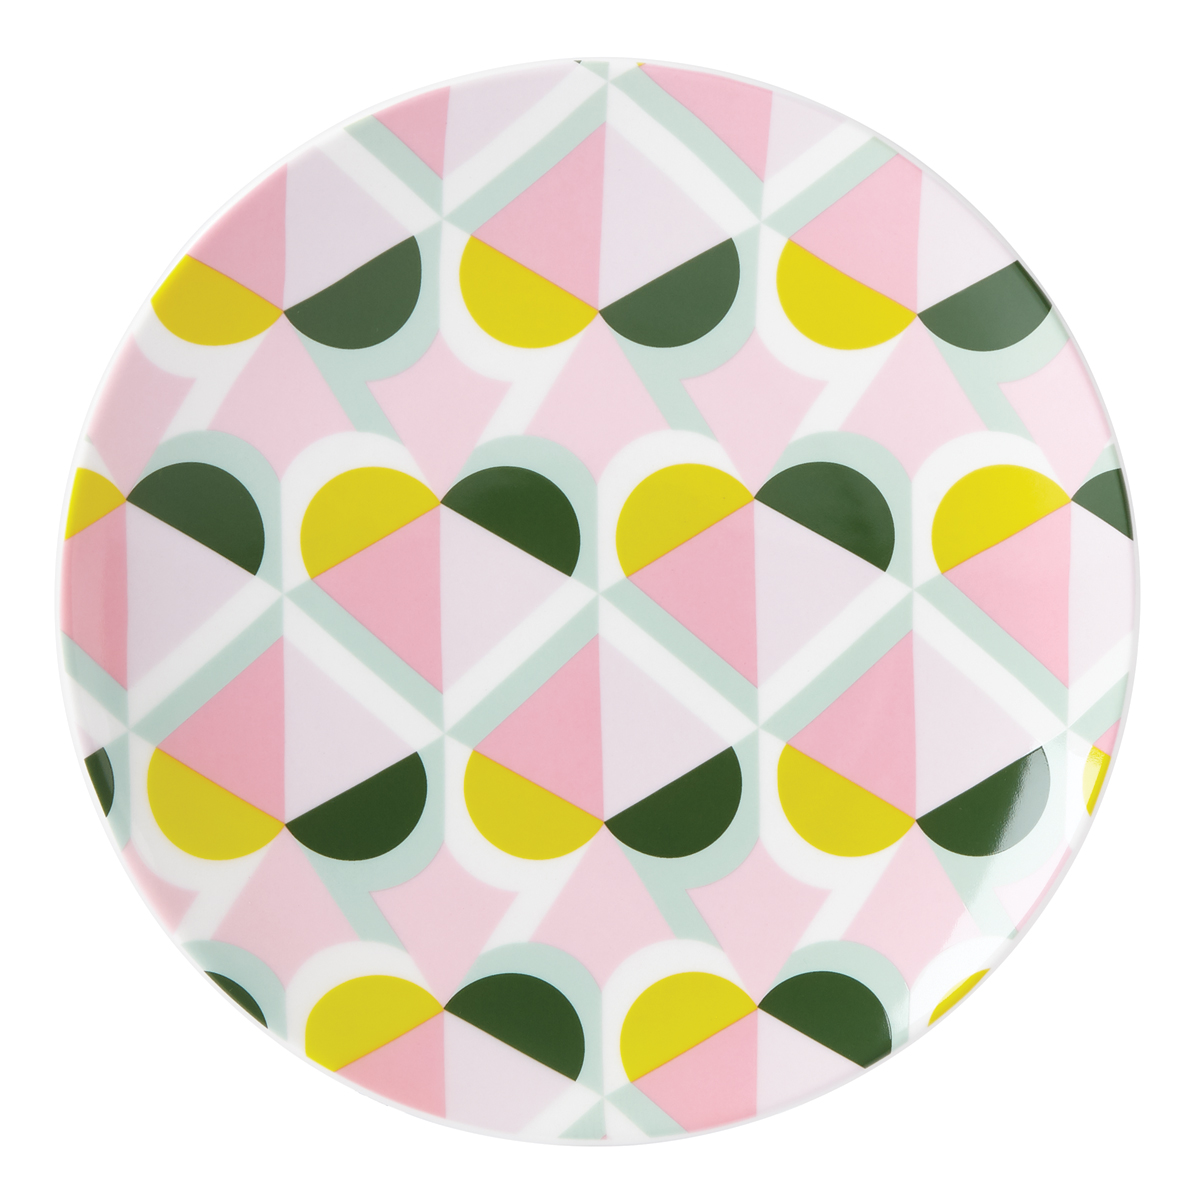 Kate Spade China by Lenox, Geo Spade Accent Plate